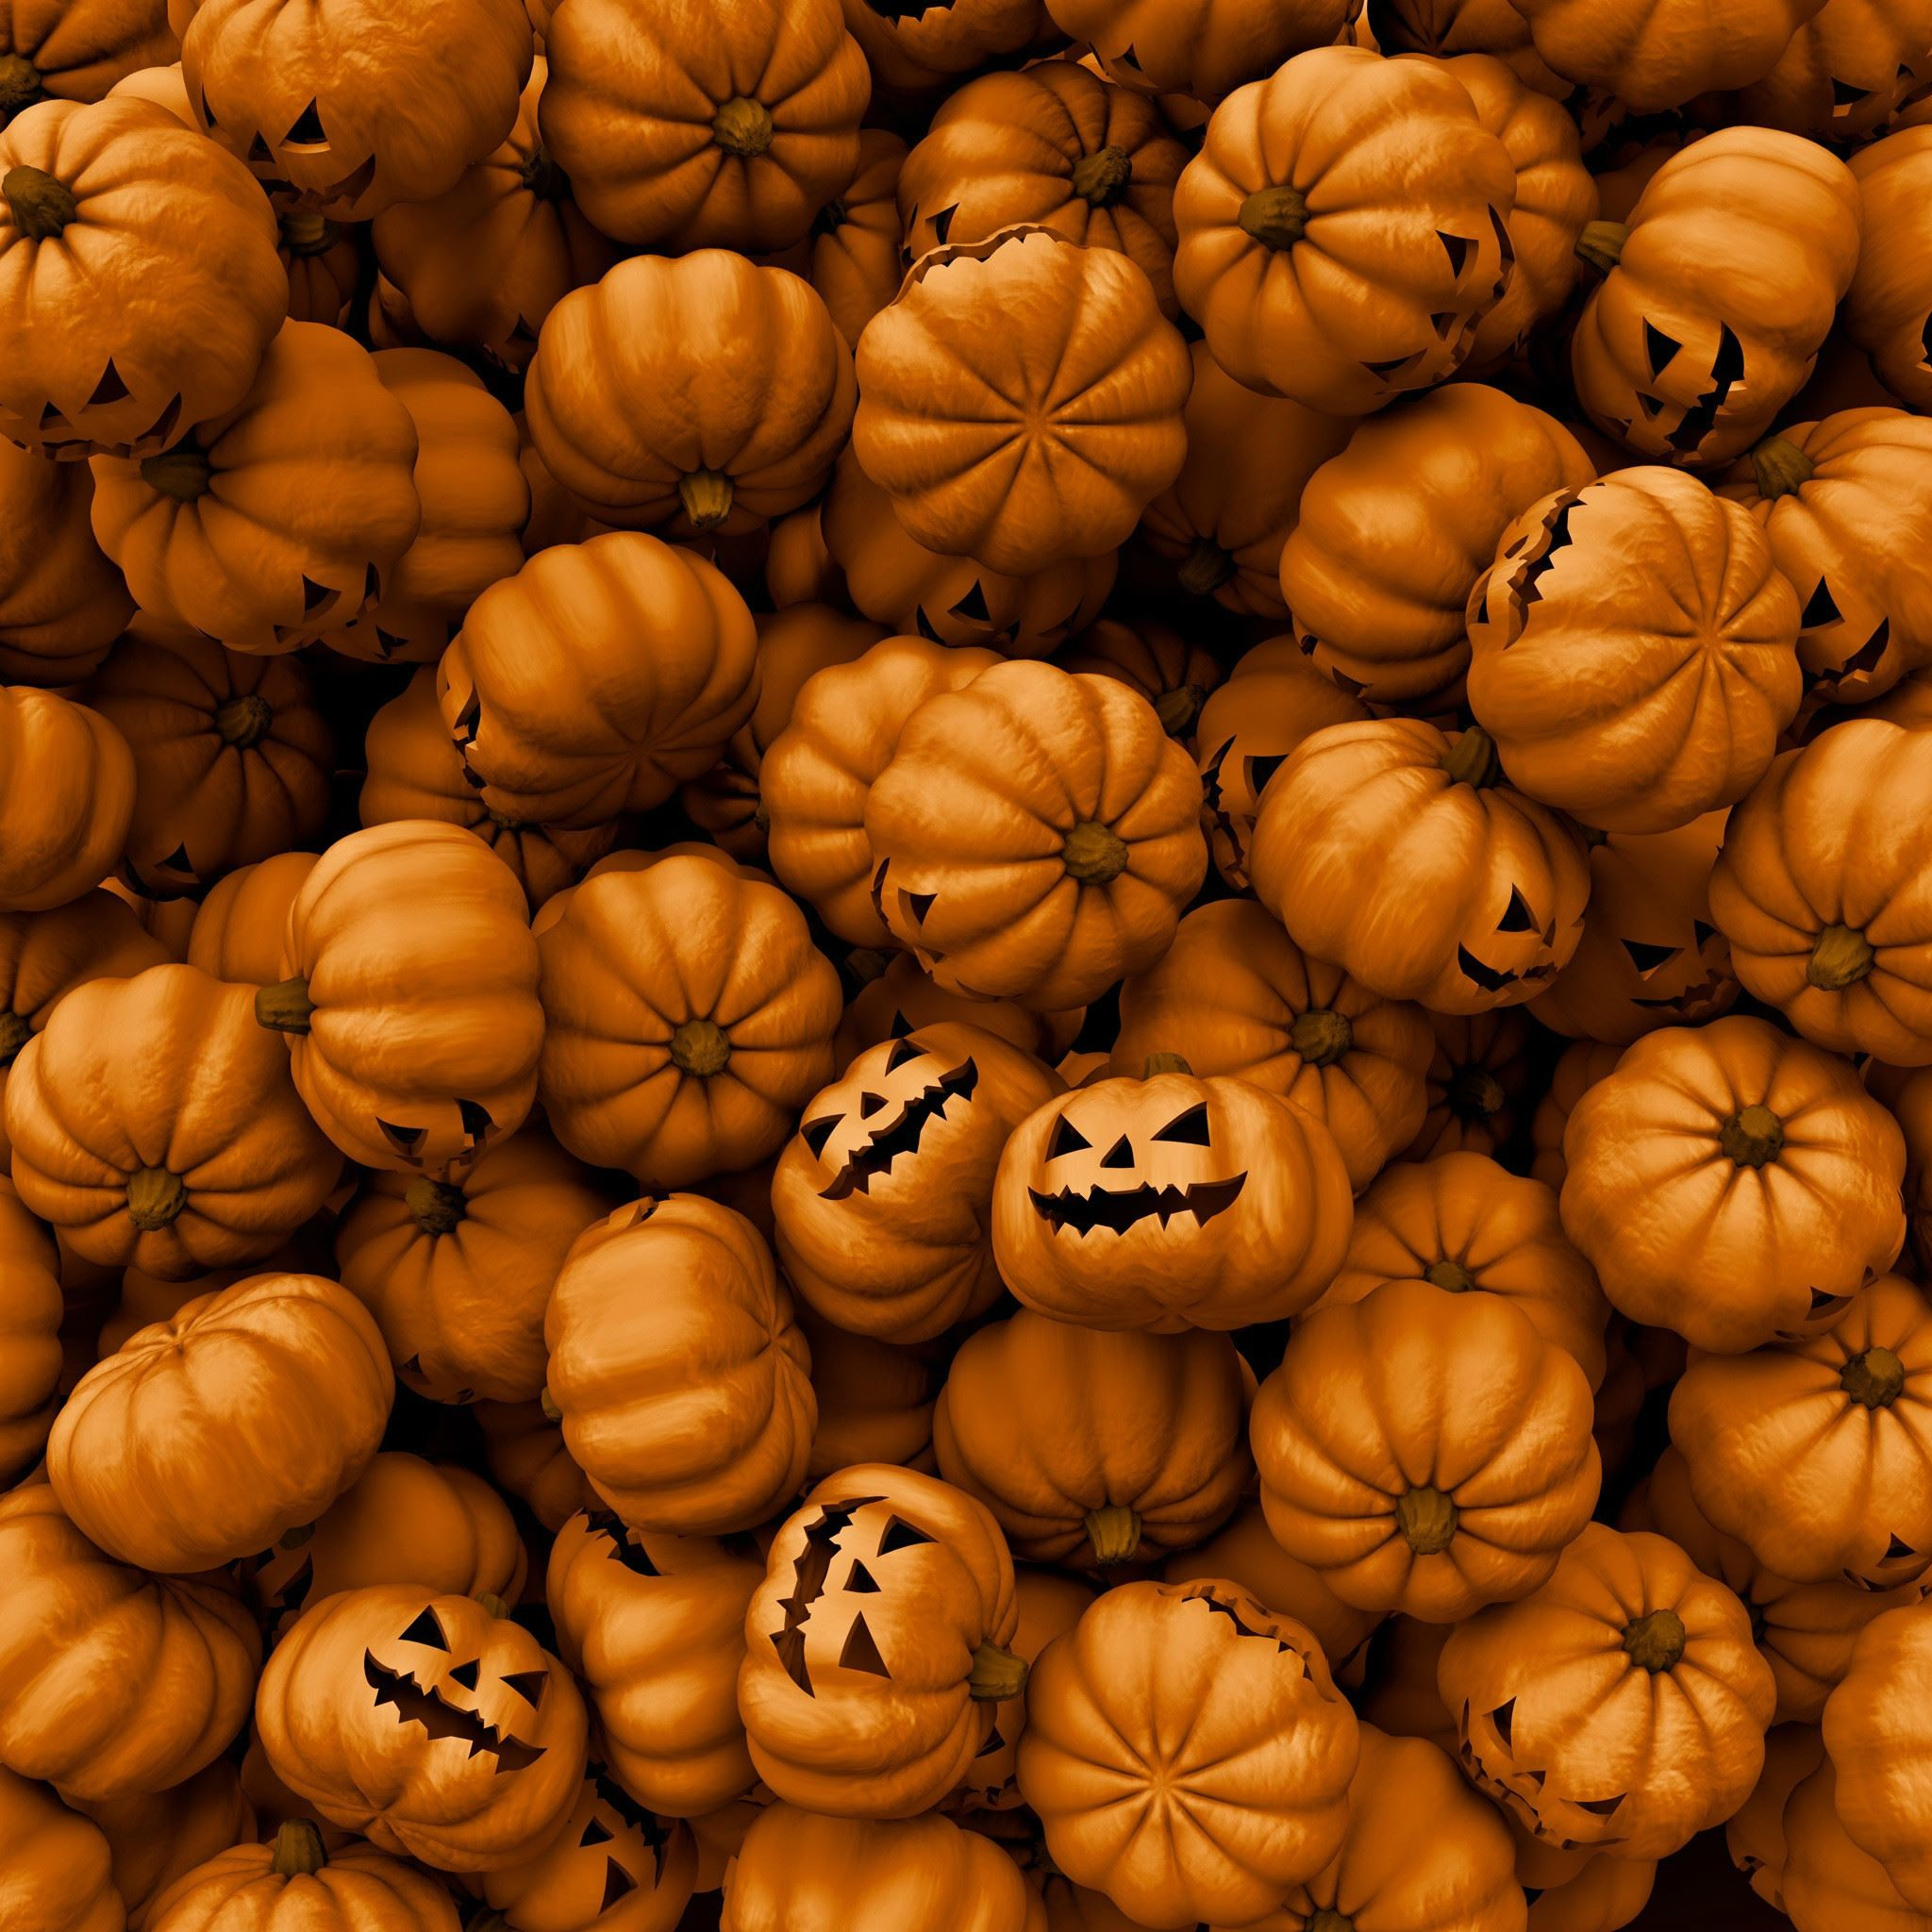 Halloween Pumpkins Ipad Air Wallpapers Free Download